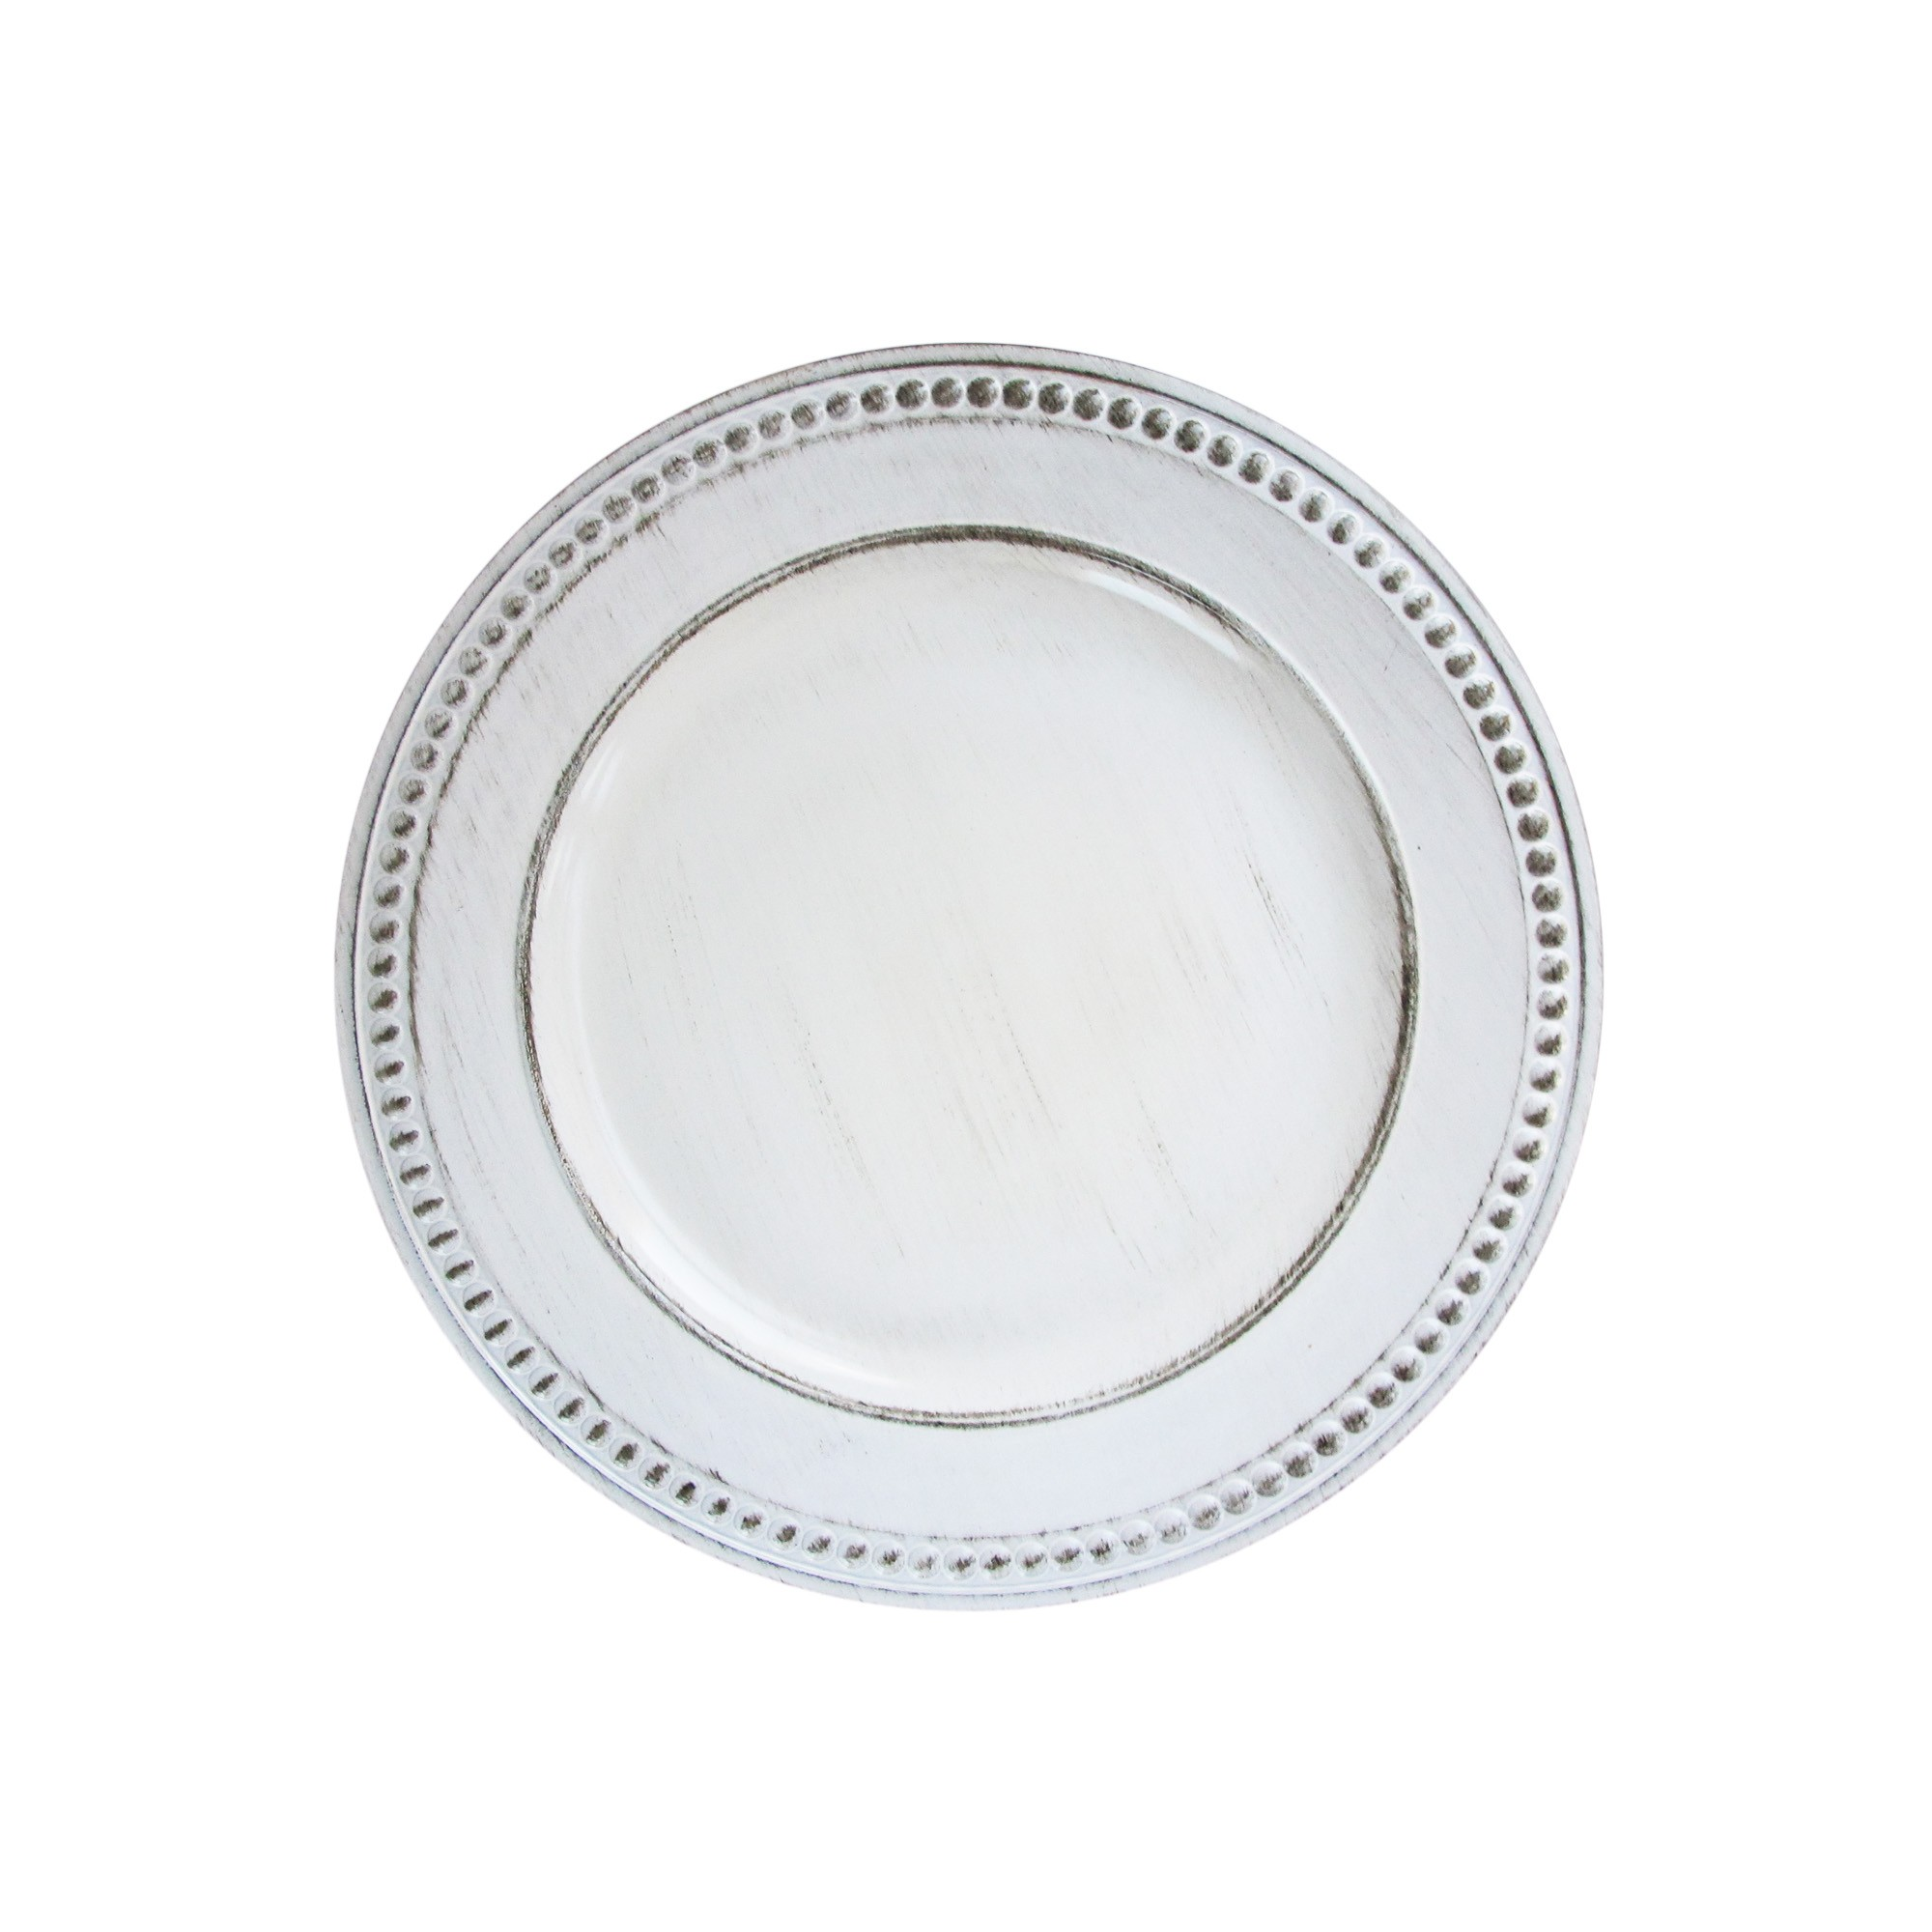 Jay Import 1270281 Beaded White Antique 14  Charger Plate  sc 1 st  LionsDeal & Jay Import 1270281 Beaded White Antique 14